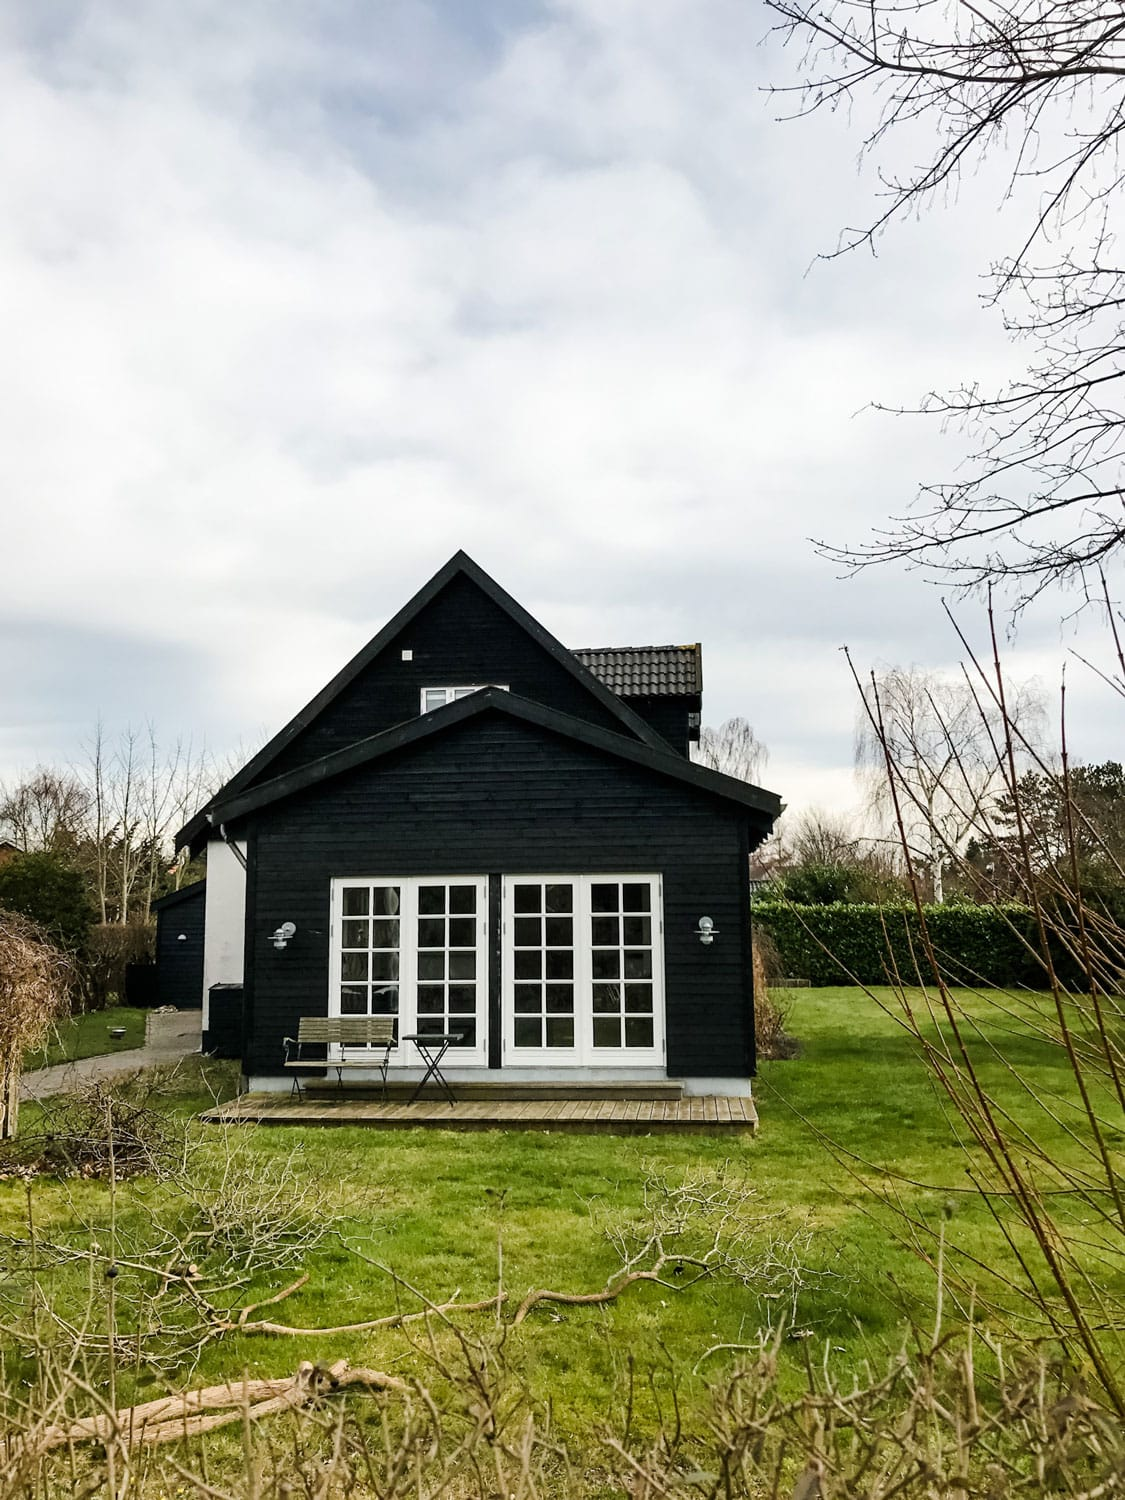 a black house with white trim